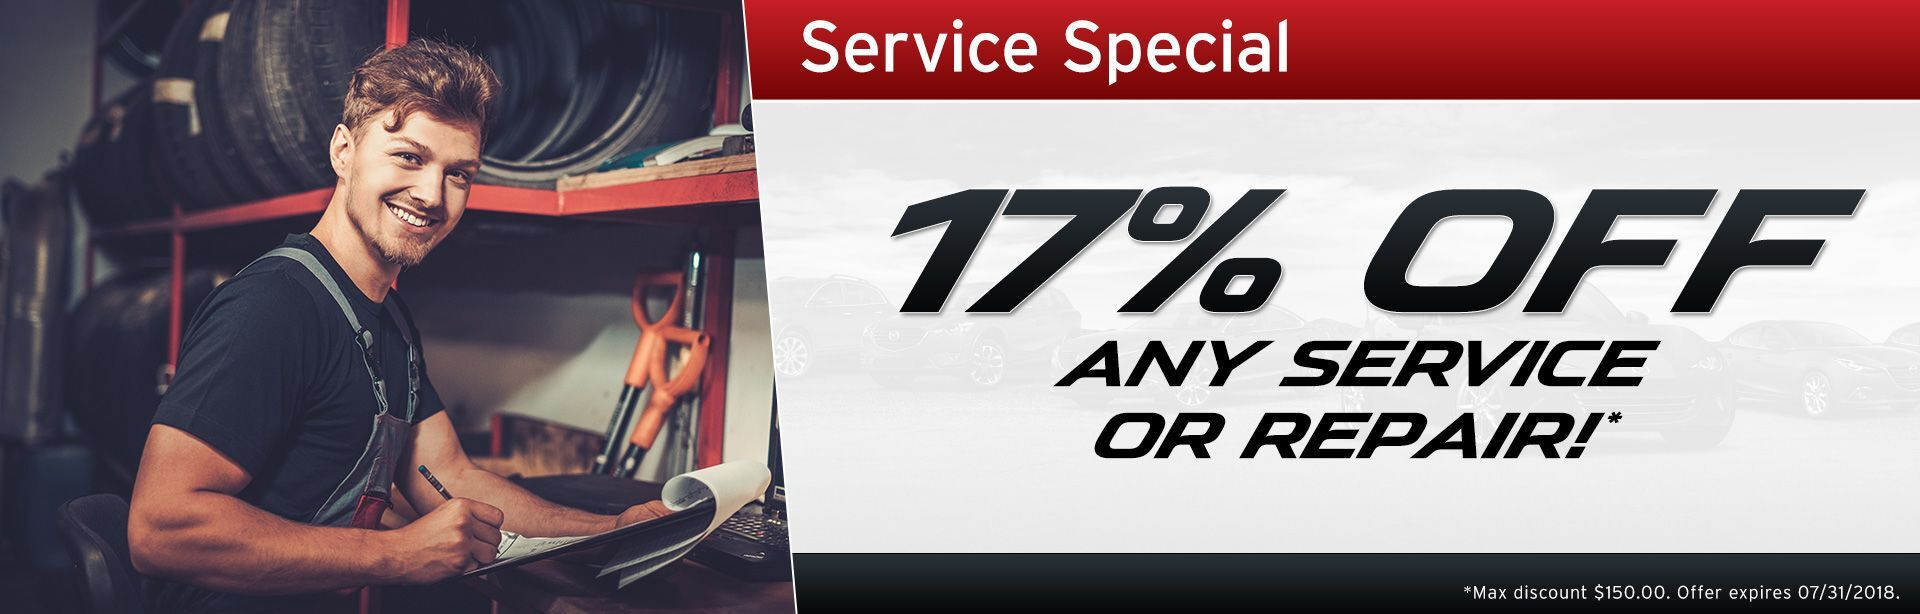 Service Offers